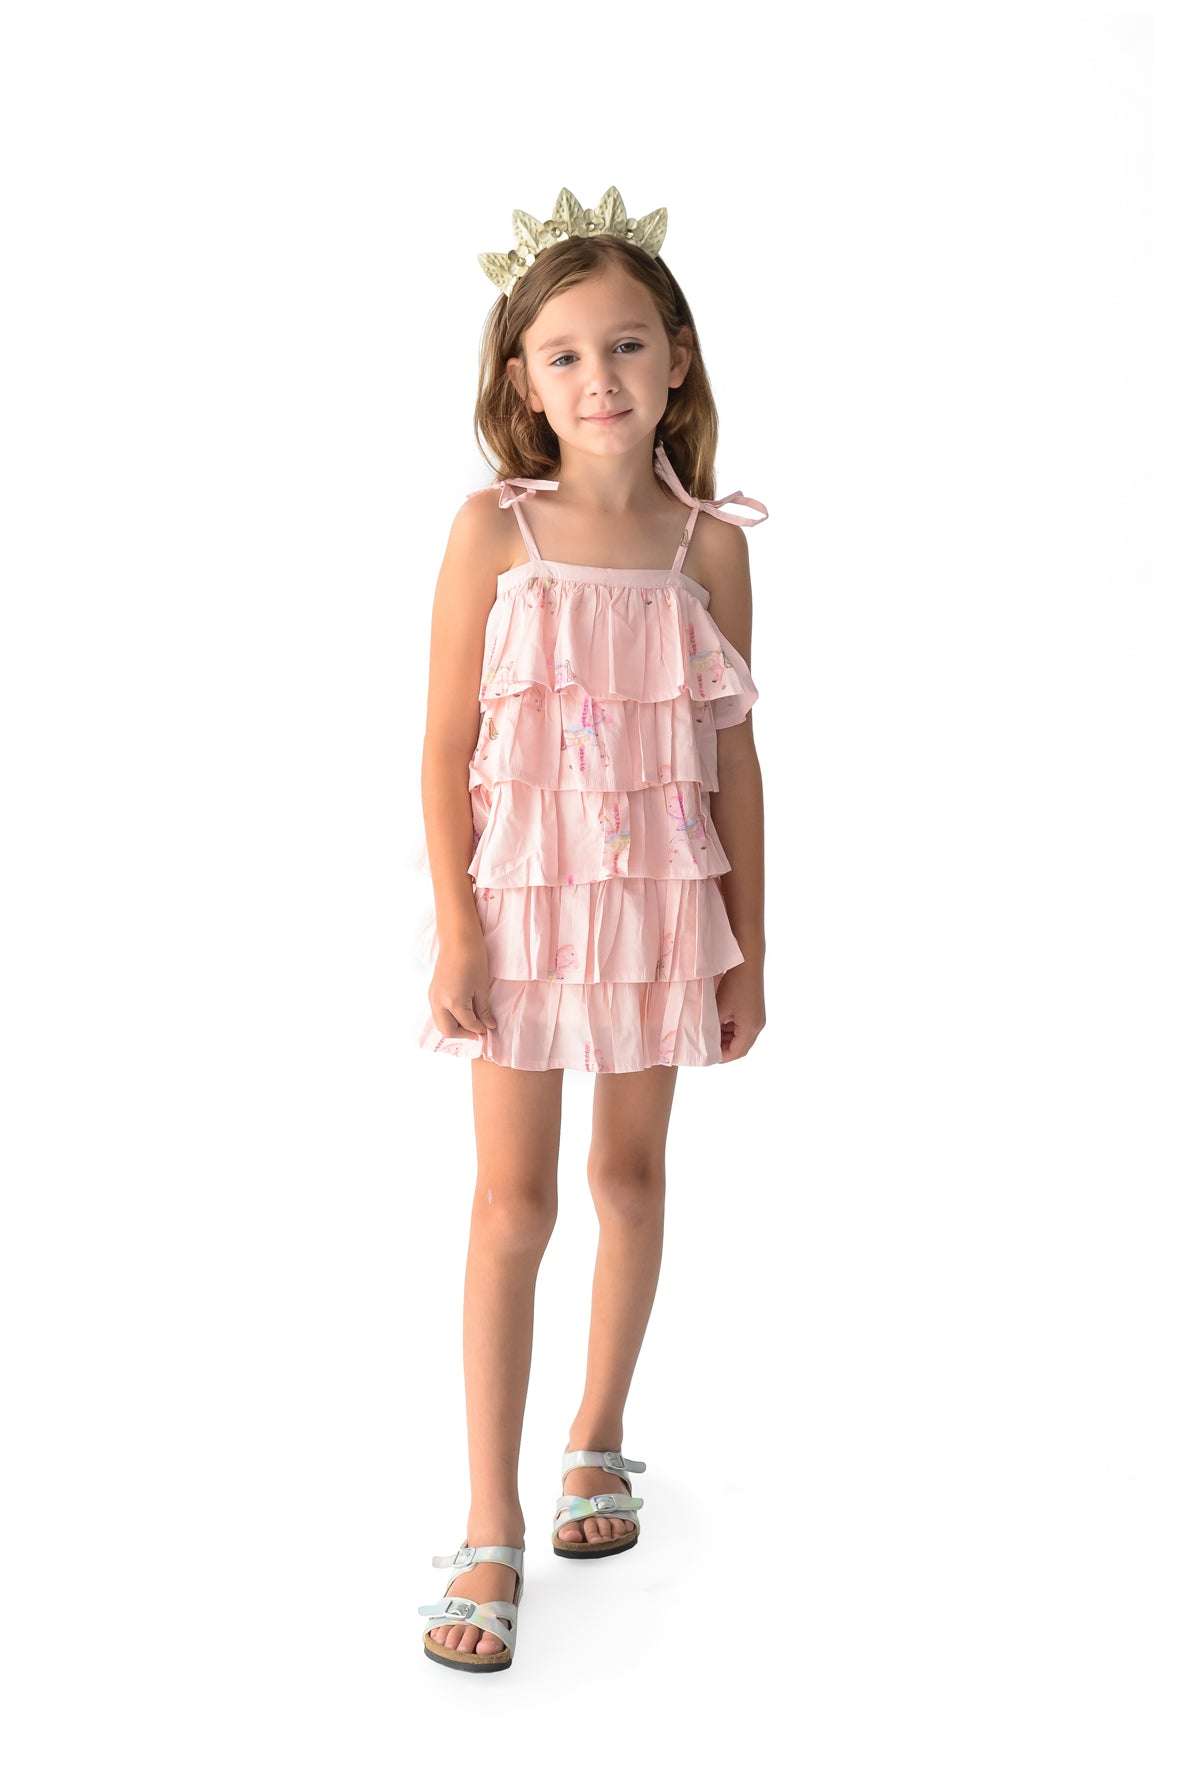 Alex & Ant Frou Frou Dress